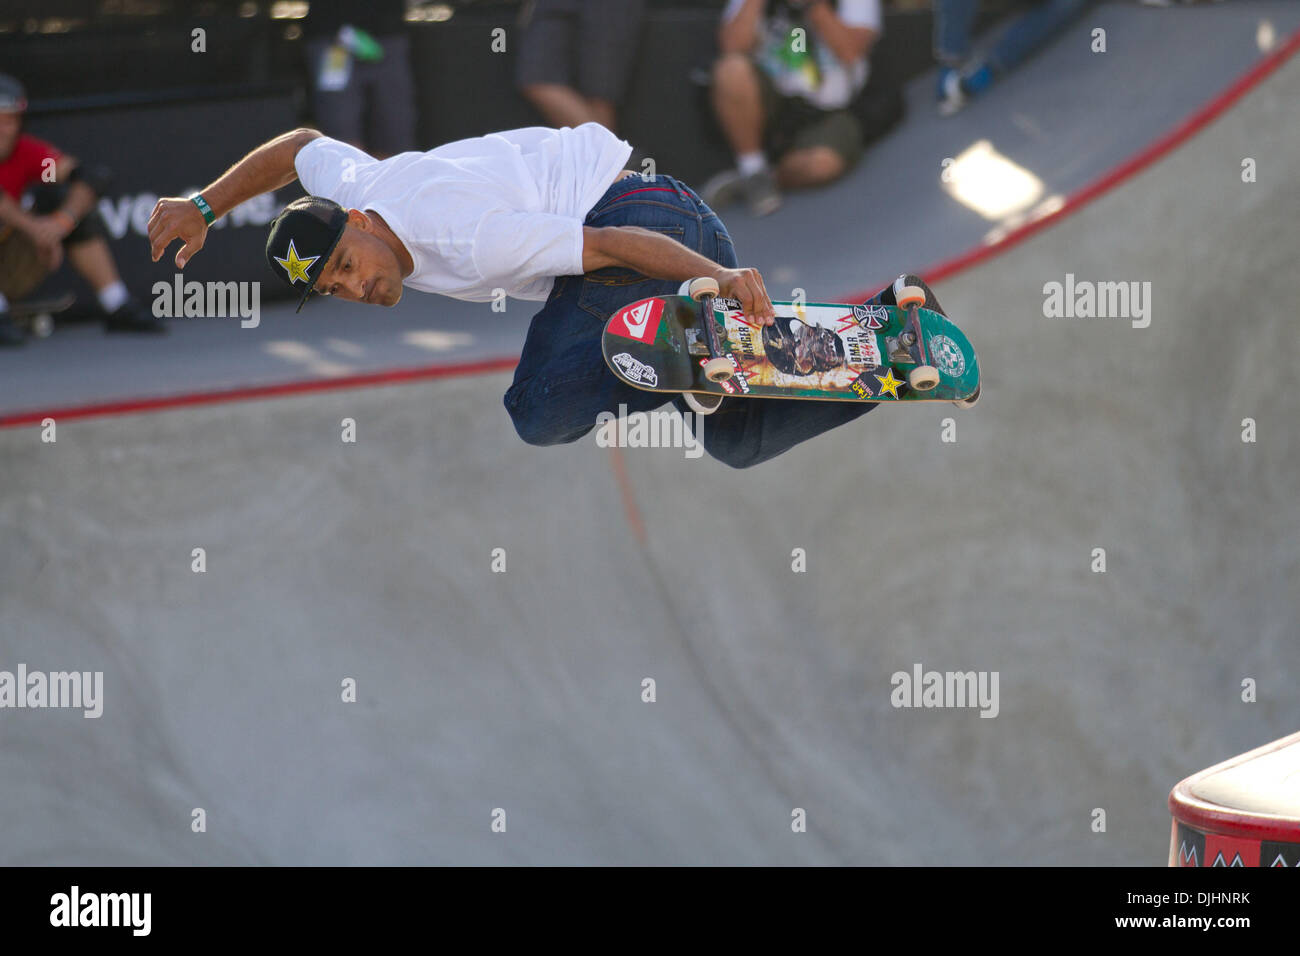 Aug. 01, 2010 - Los Angeles, CA, United States of America - 1 August 2010:  Omar Hassan airs over the gap in Skateboard Park at the X Games in Los Angeles, CA.  Mandatory Credit: Josh Chapel / Southcreek Global (Credit Image: © Southcreek Global/ZUMApress.com) - Stock Image